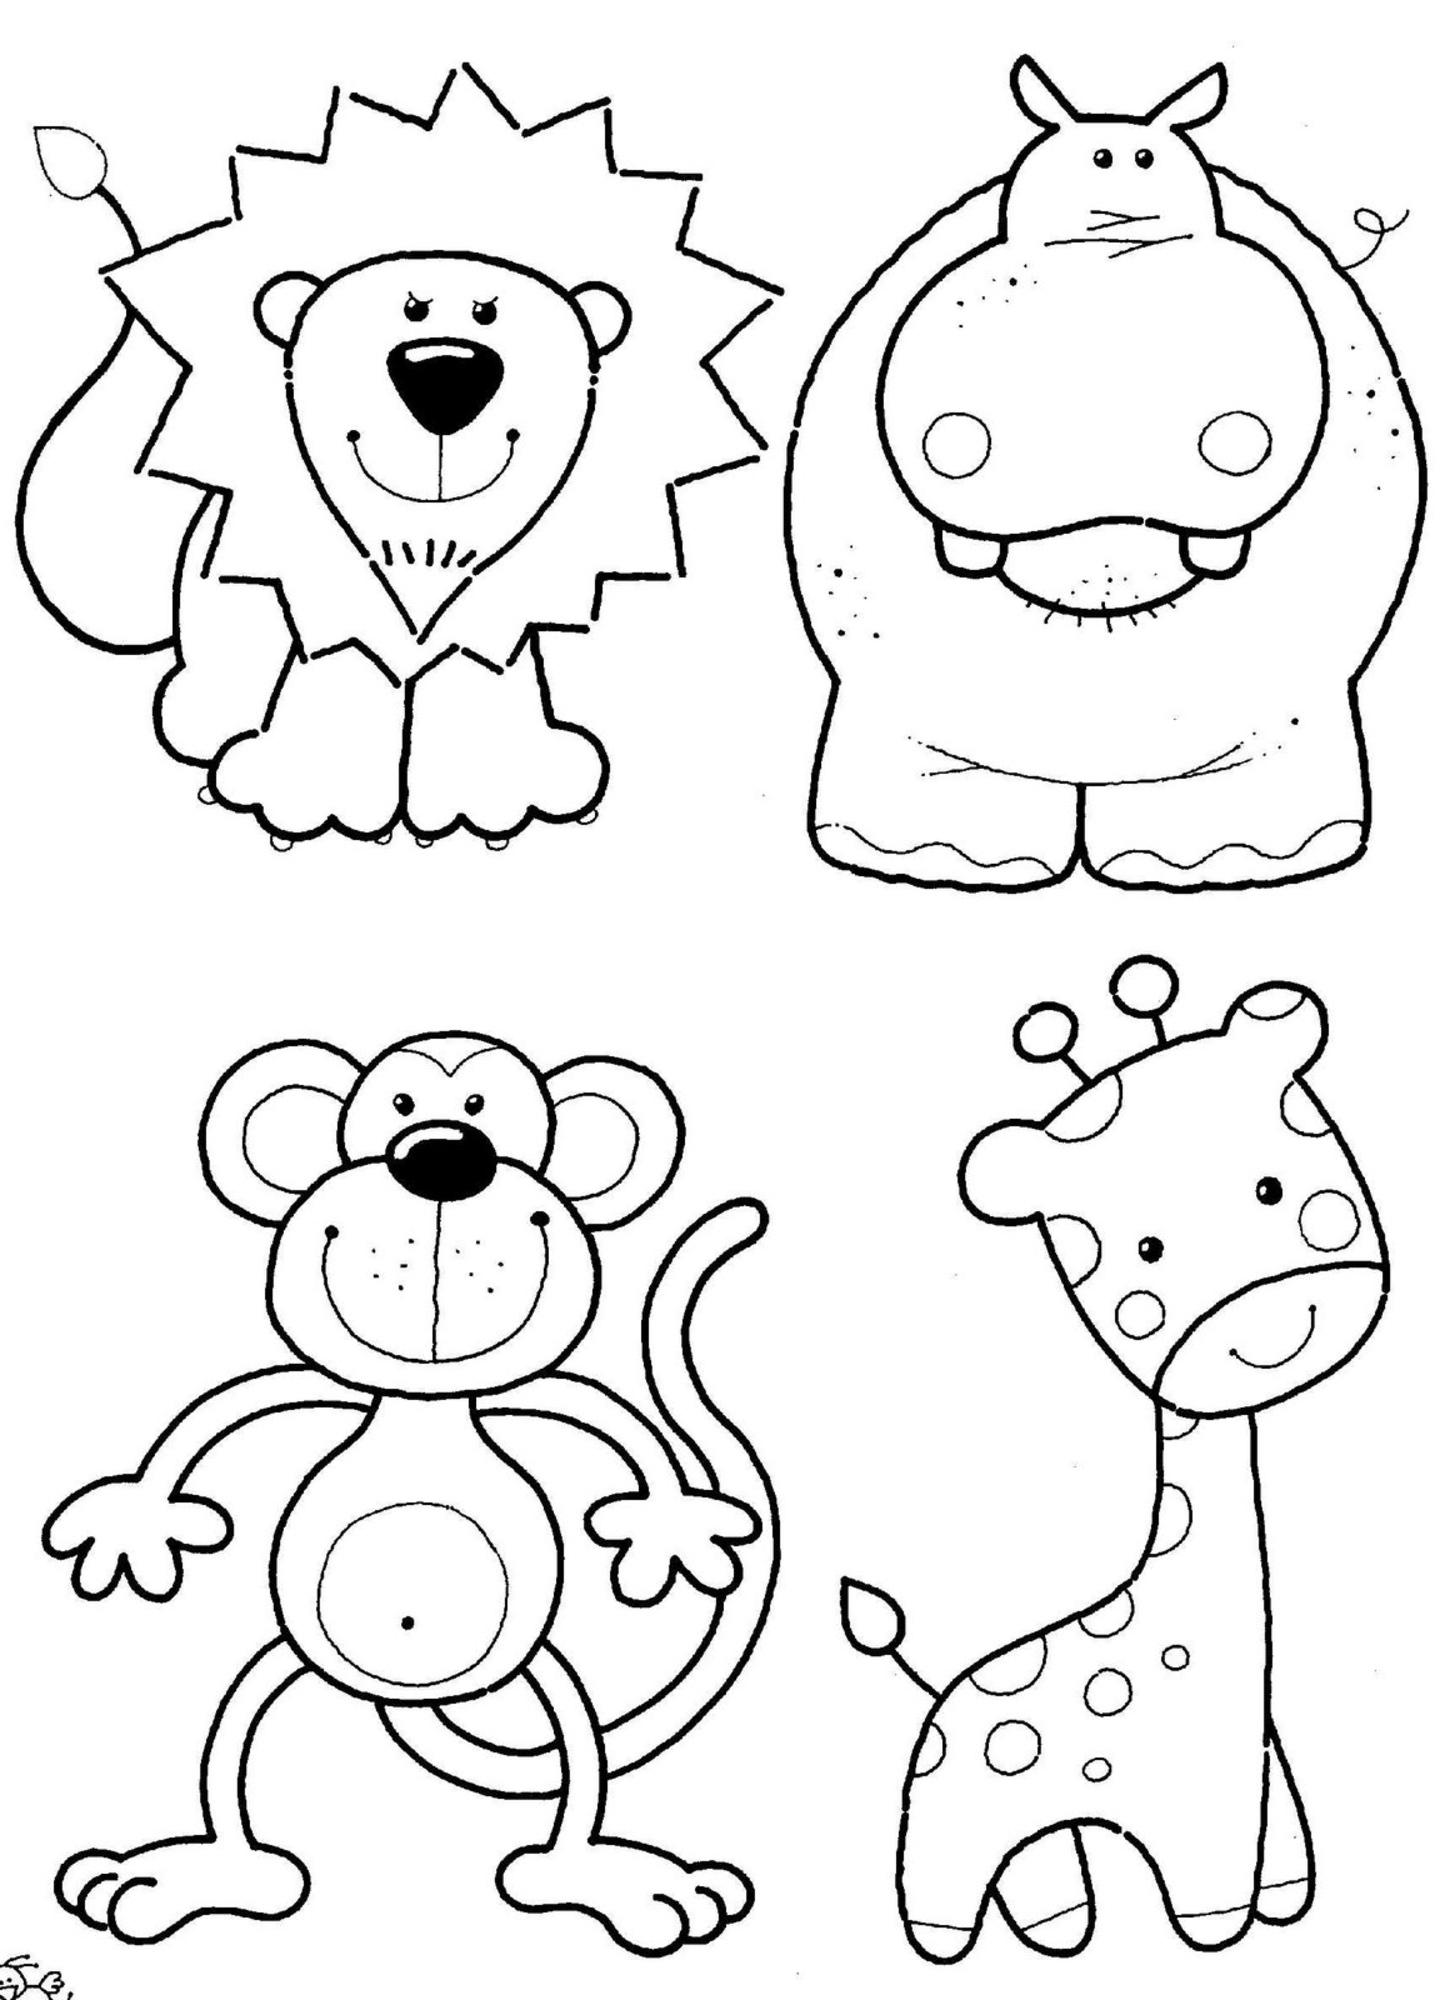 coloring baby animals 10 best free printable baby animal coloring pages for kids animals coloring baby